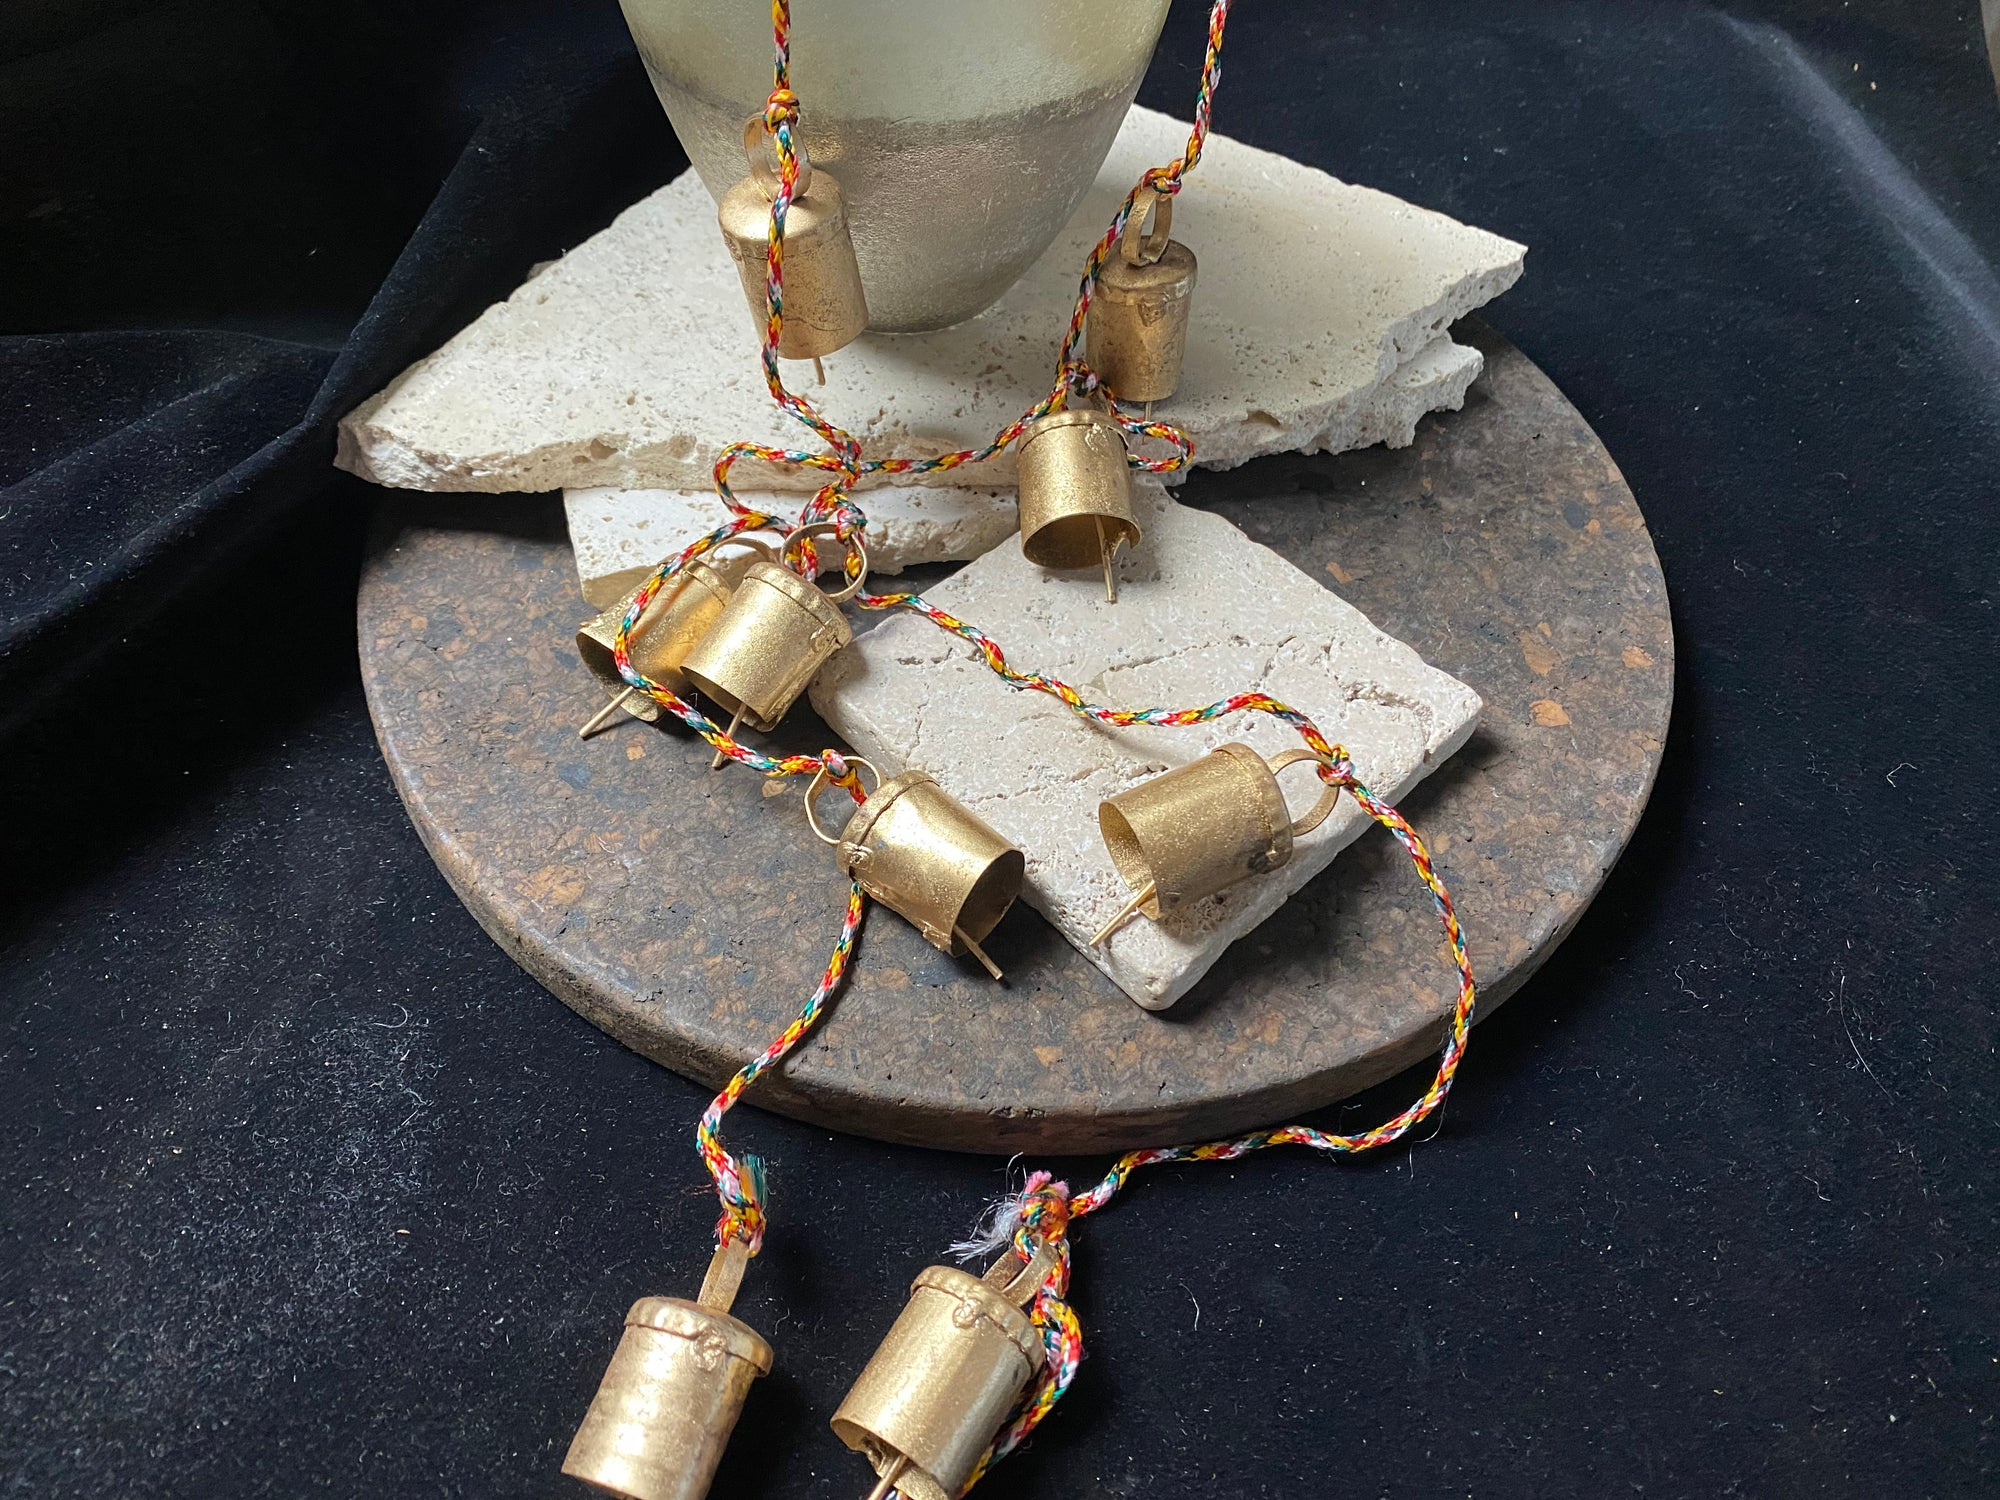 Bells on strings, from Nepal. Perfect for use as door bells or as wind chimes